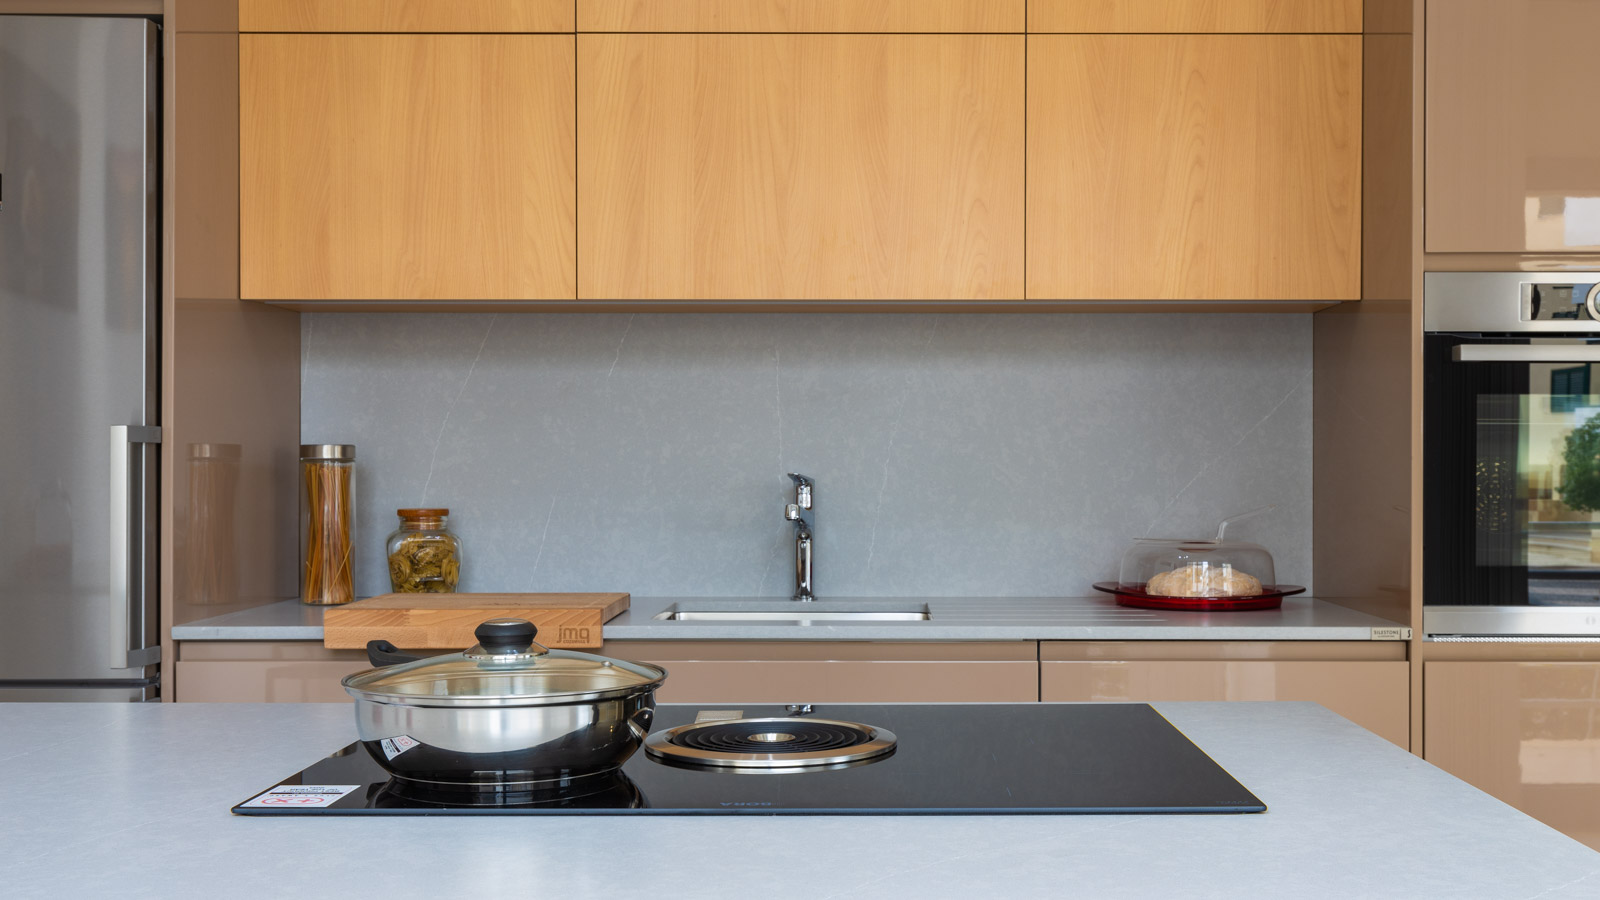 Kitchen in Showroom in Armação de Pêra, with lacquered and melamine fronts. Worktop and splashback Silestone. Peninsula with BORA Basic